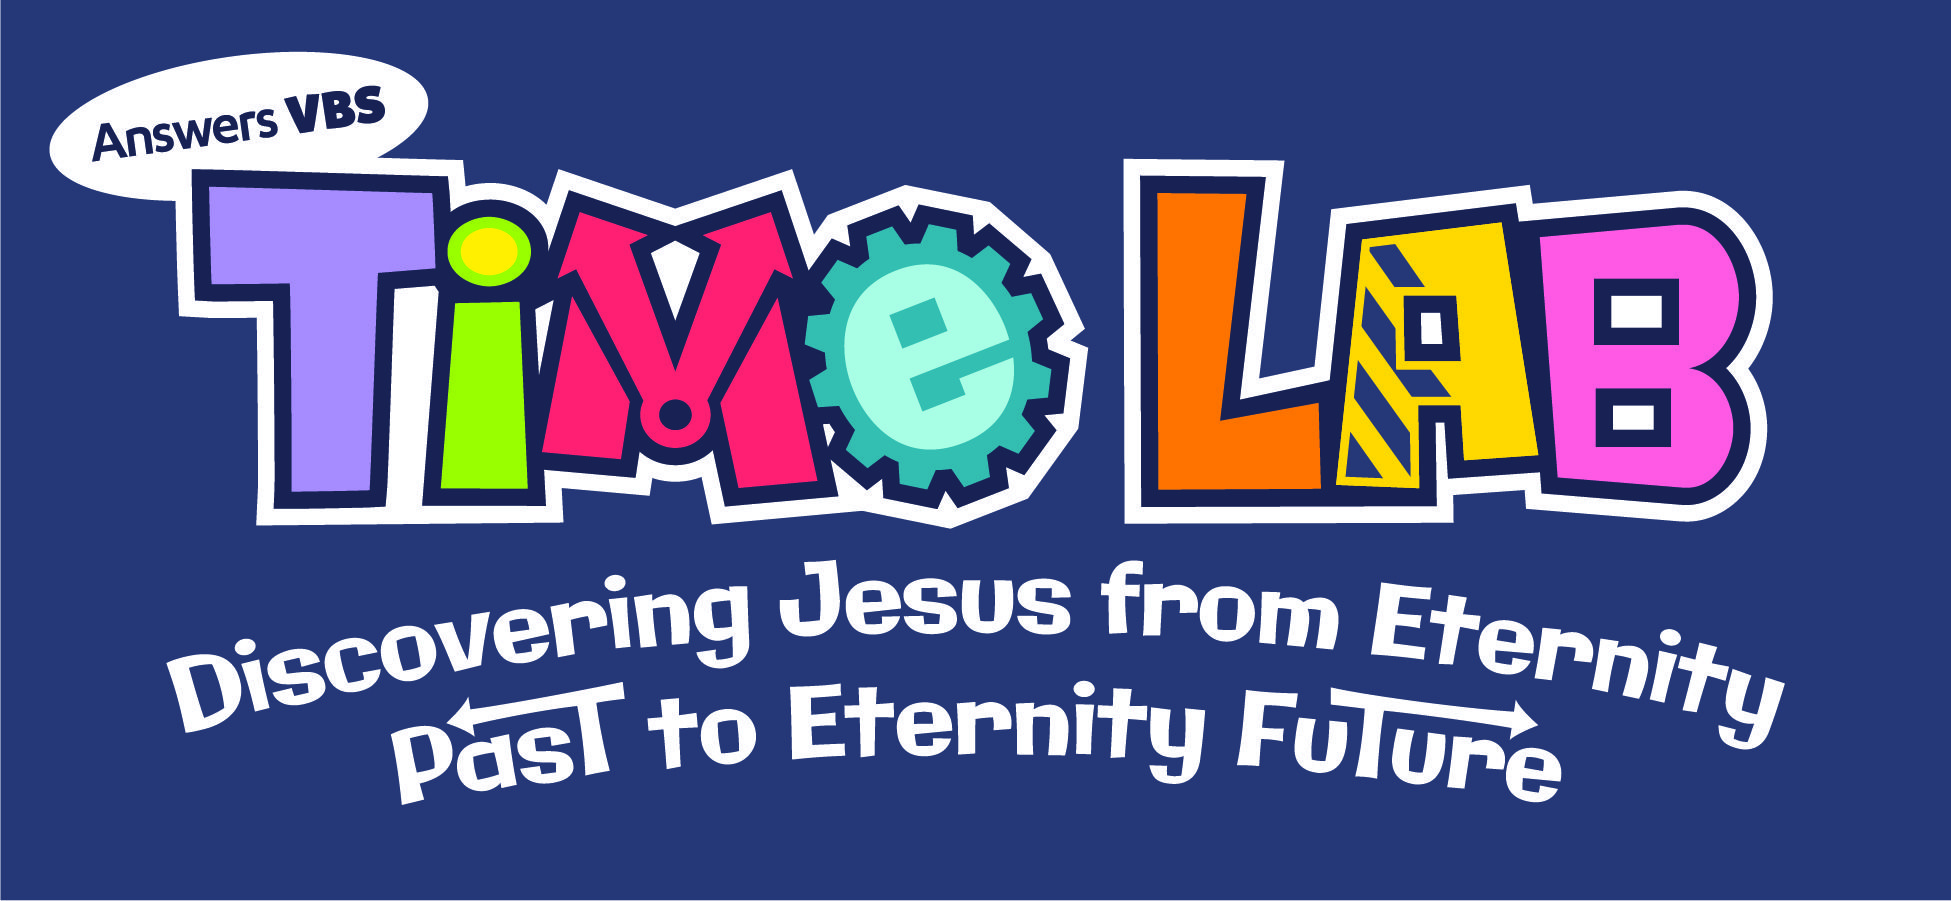 Time lab vacation bible school program for 2018 by answers vbs time lab vacation bible school program for 2018 by answers vbs answersvbs malvernweather Images